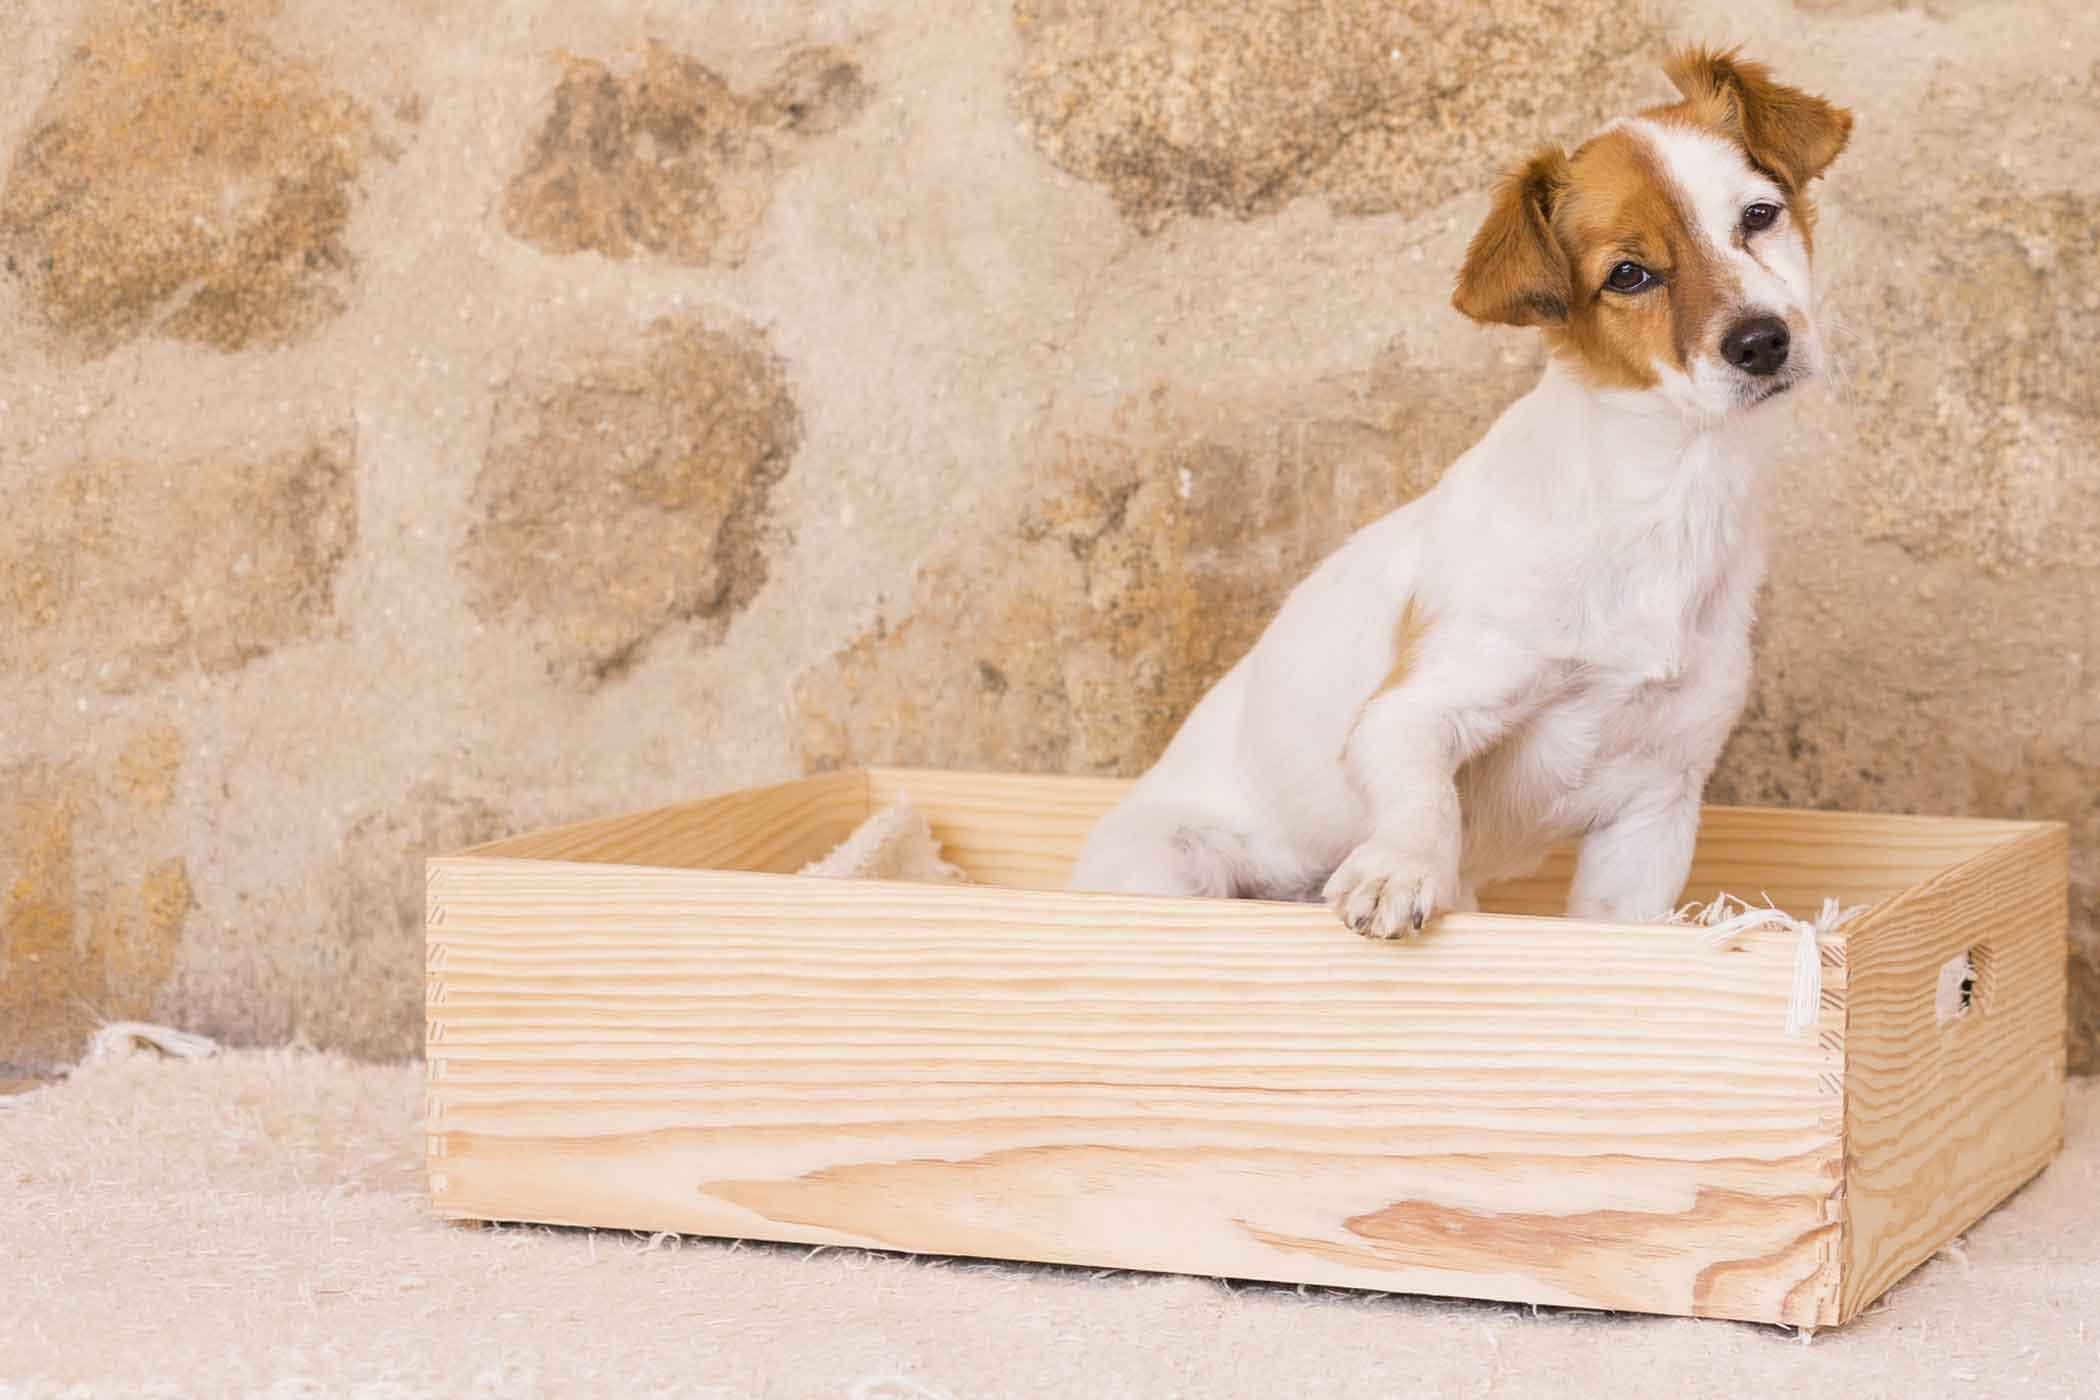 How I Trained My Dog to Use a Litter Box in One Day